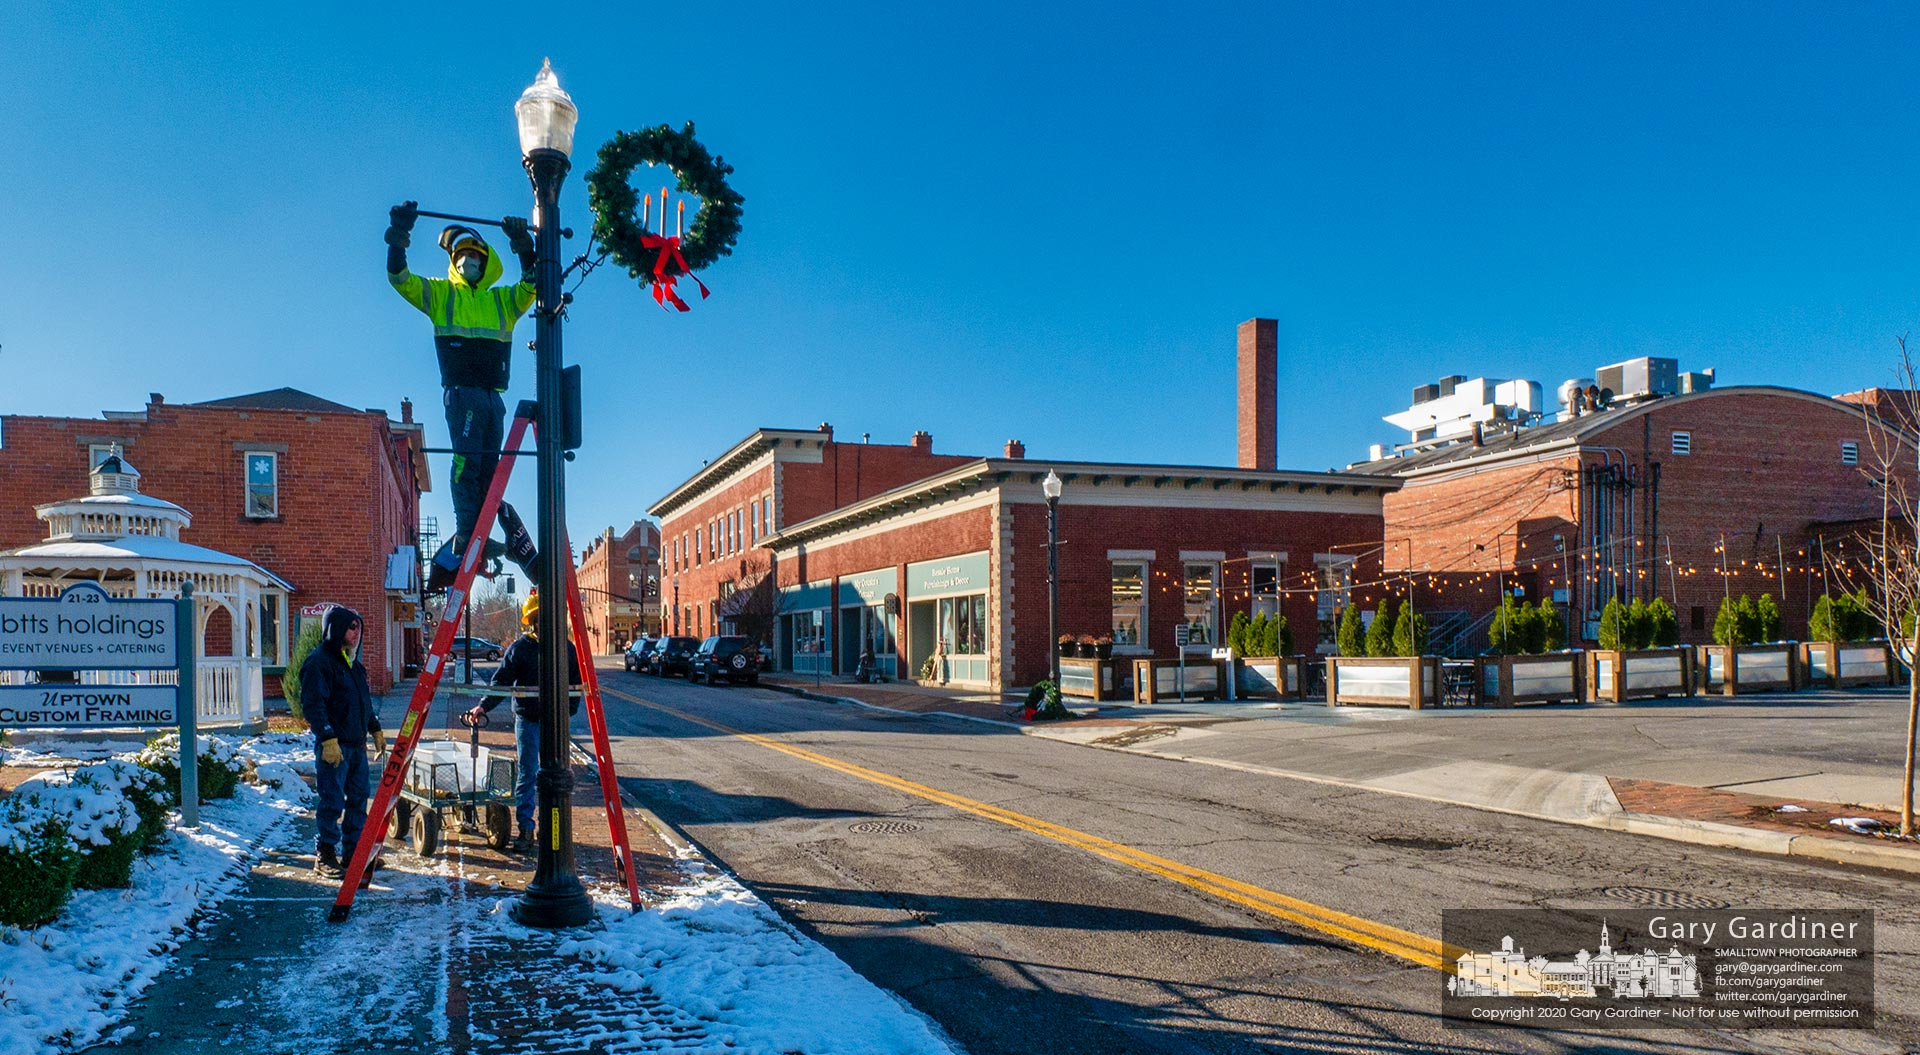 City workers install Christmas season banners on the light poles in Uptown Westerville with plans later in the week to raise the Christmas Star at State and Main. My Final Photo for Dec. 2, 2020.